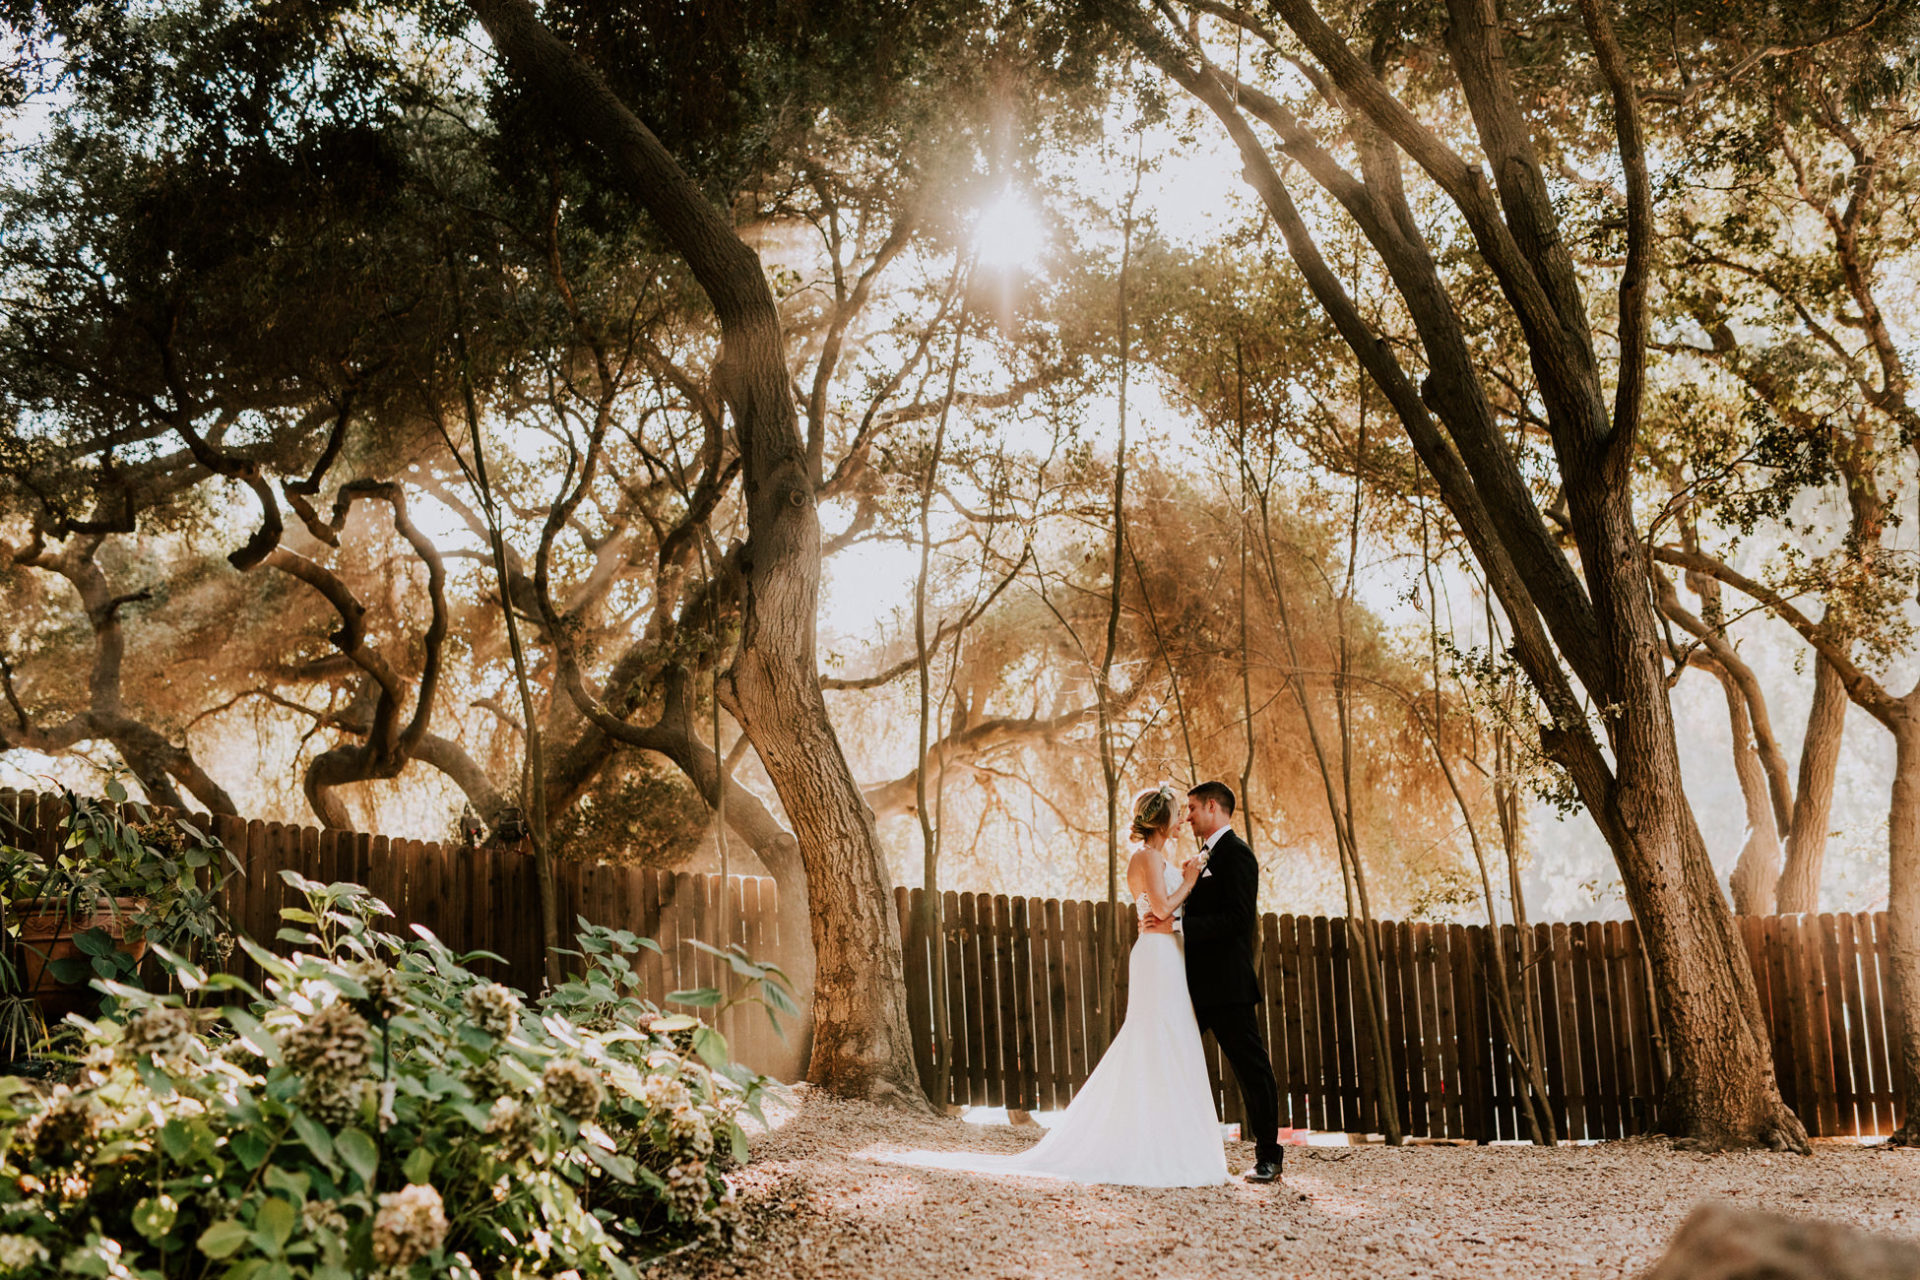 best-top-los-angeles-destination-wedding-photographer-hipster-modern-quirky-editorial-romantic-epic-16-malibu-calamigos-ranch